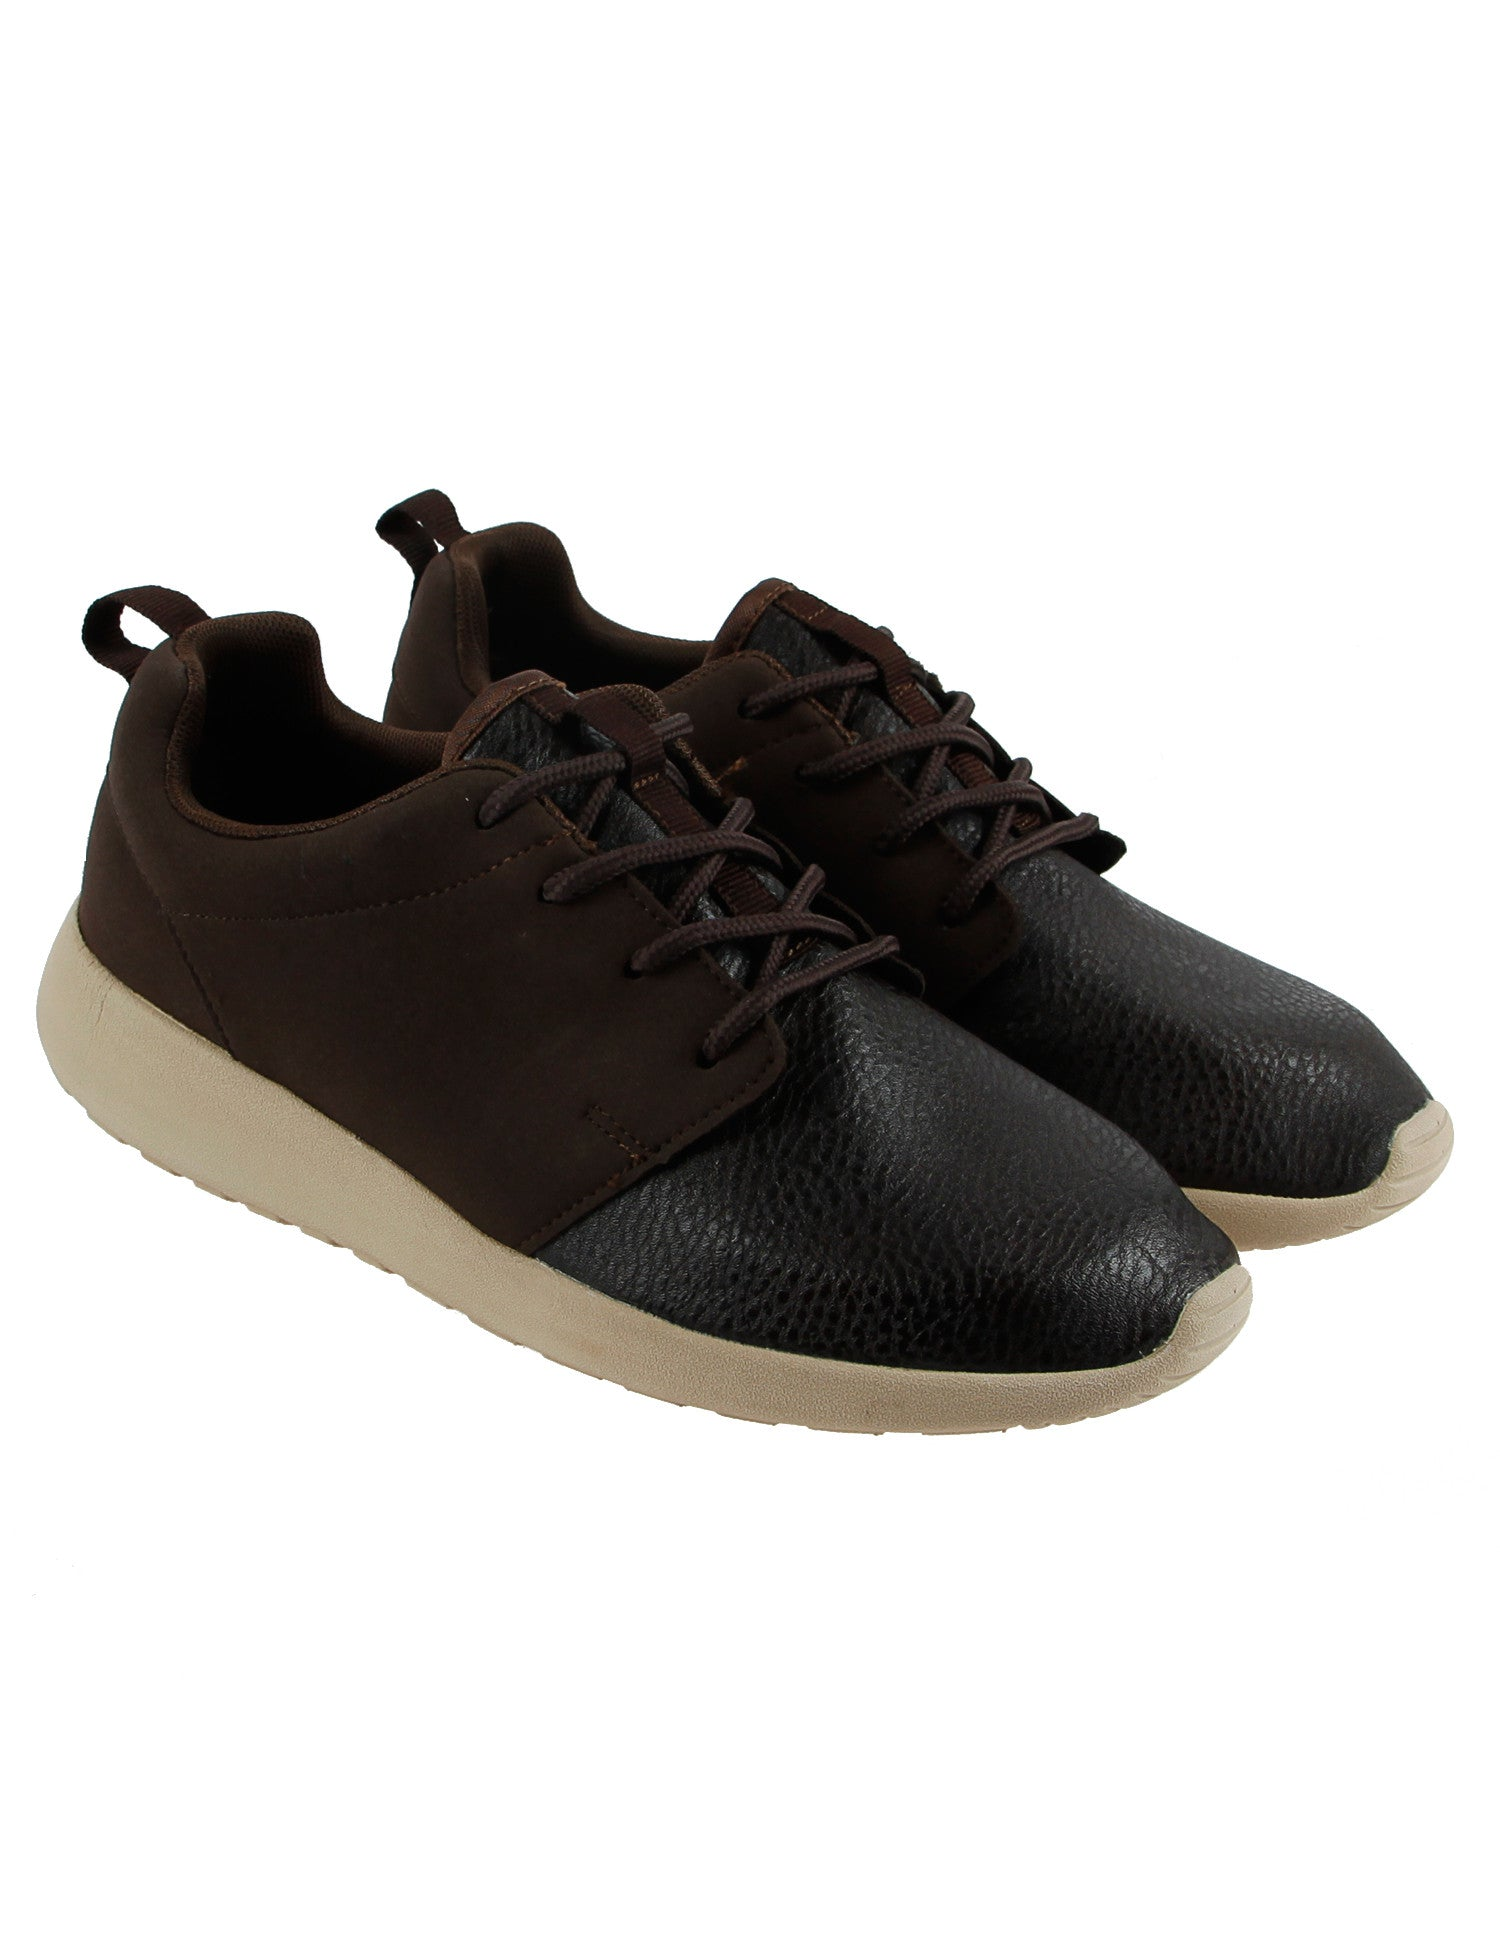 Cultz 150305 Shoes  Brown